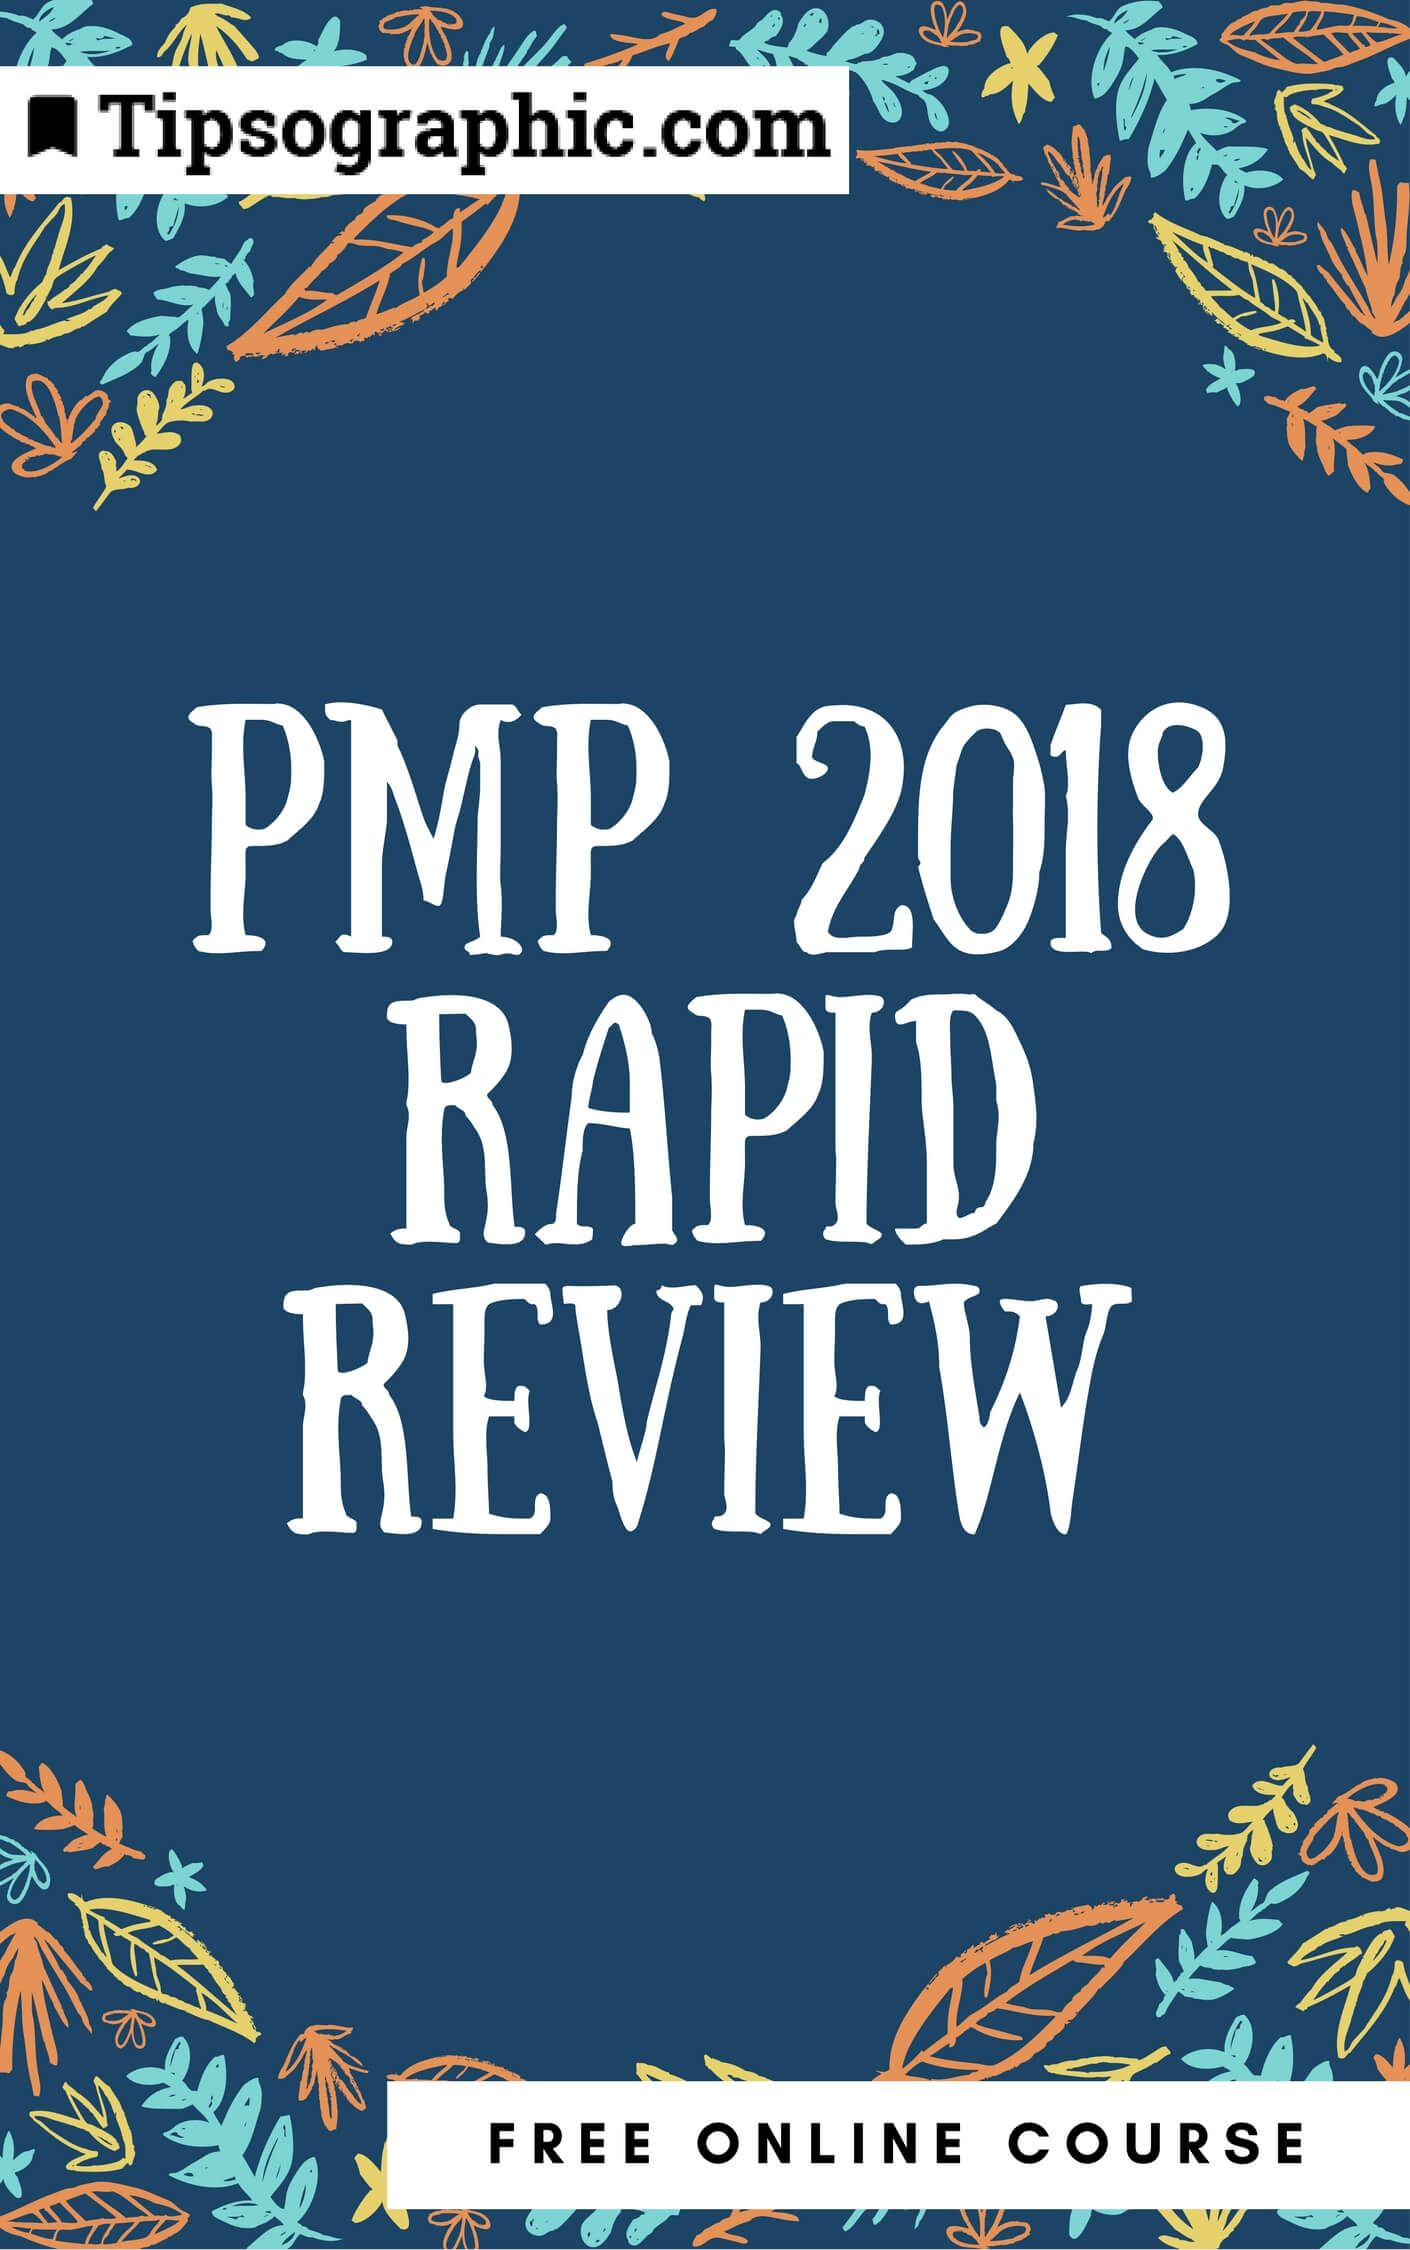 Pmp certification project risk management tips based on pmbok pmp 2018 rapid review free online course tipsographic xflitez Image collections